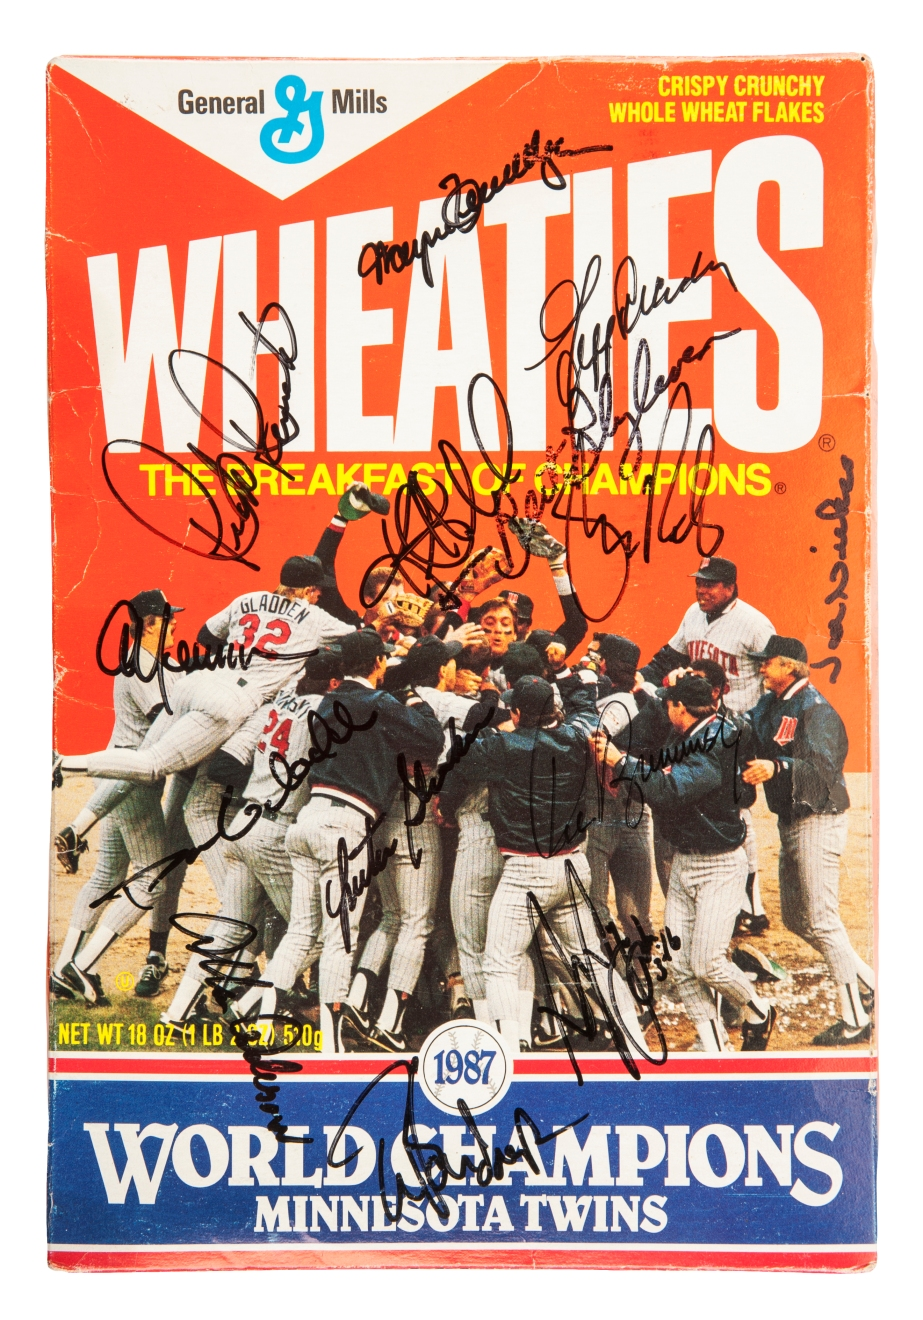 Minnesota Twins Win The 1987 World Series Again